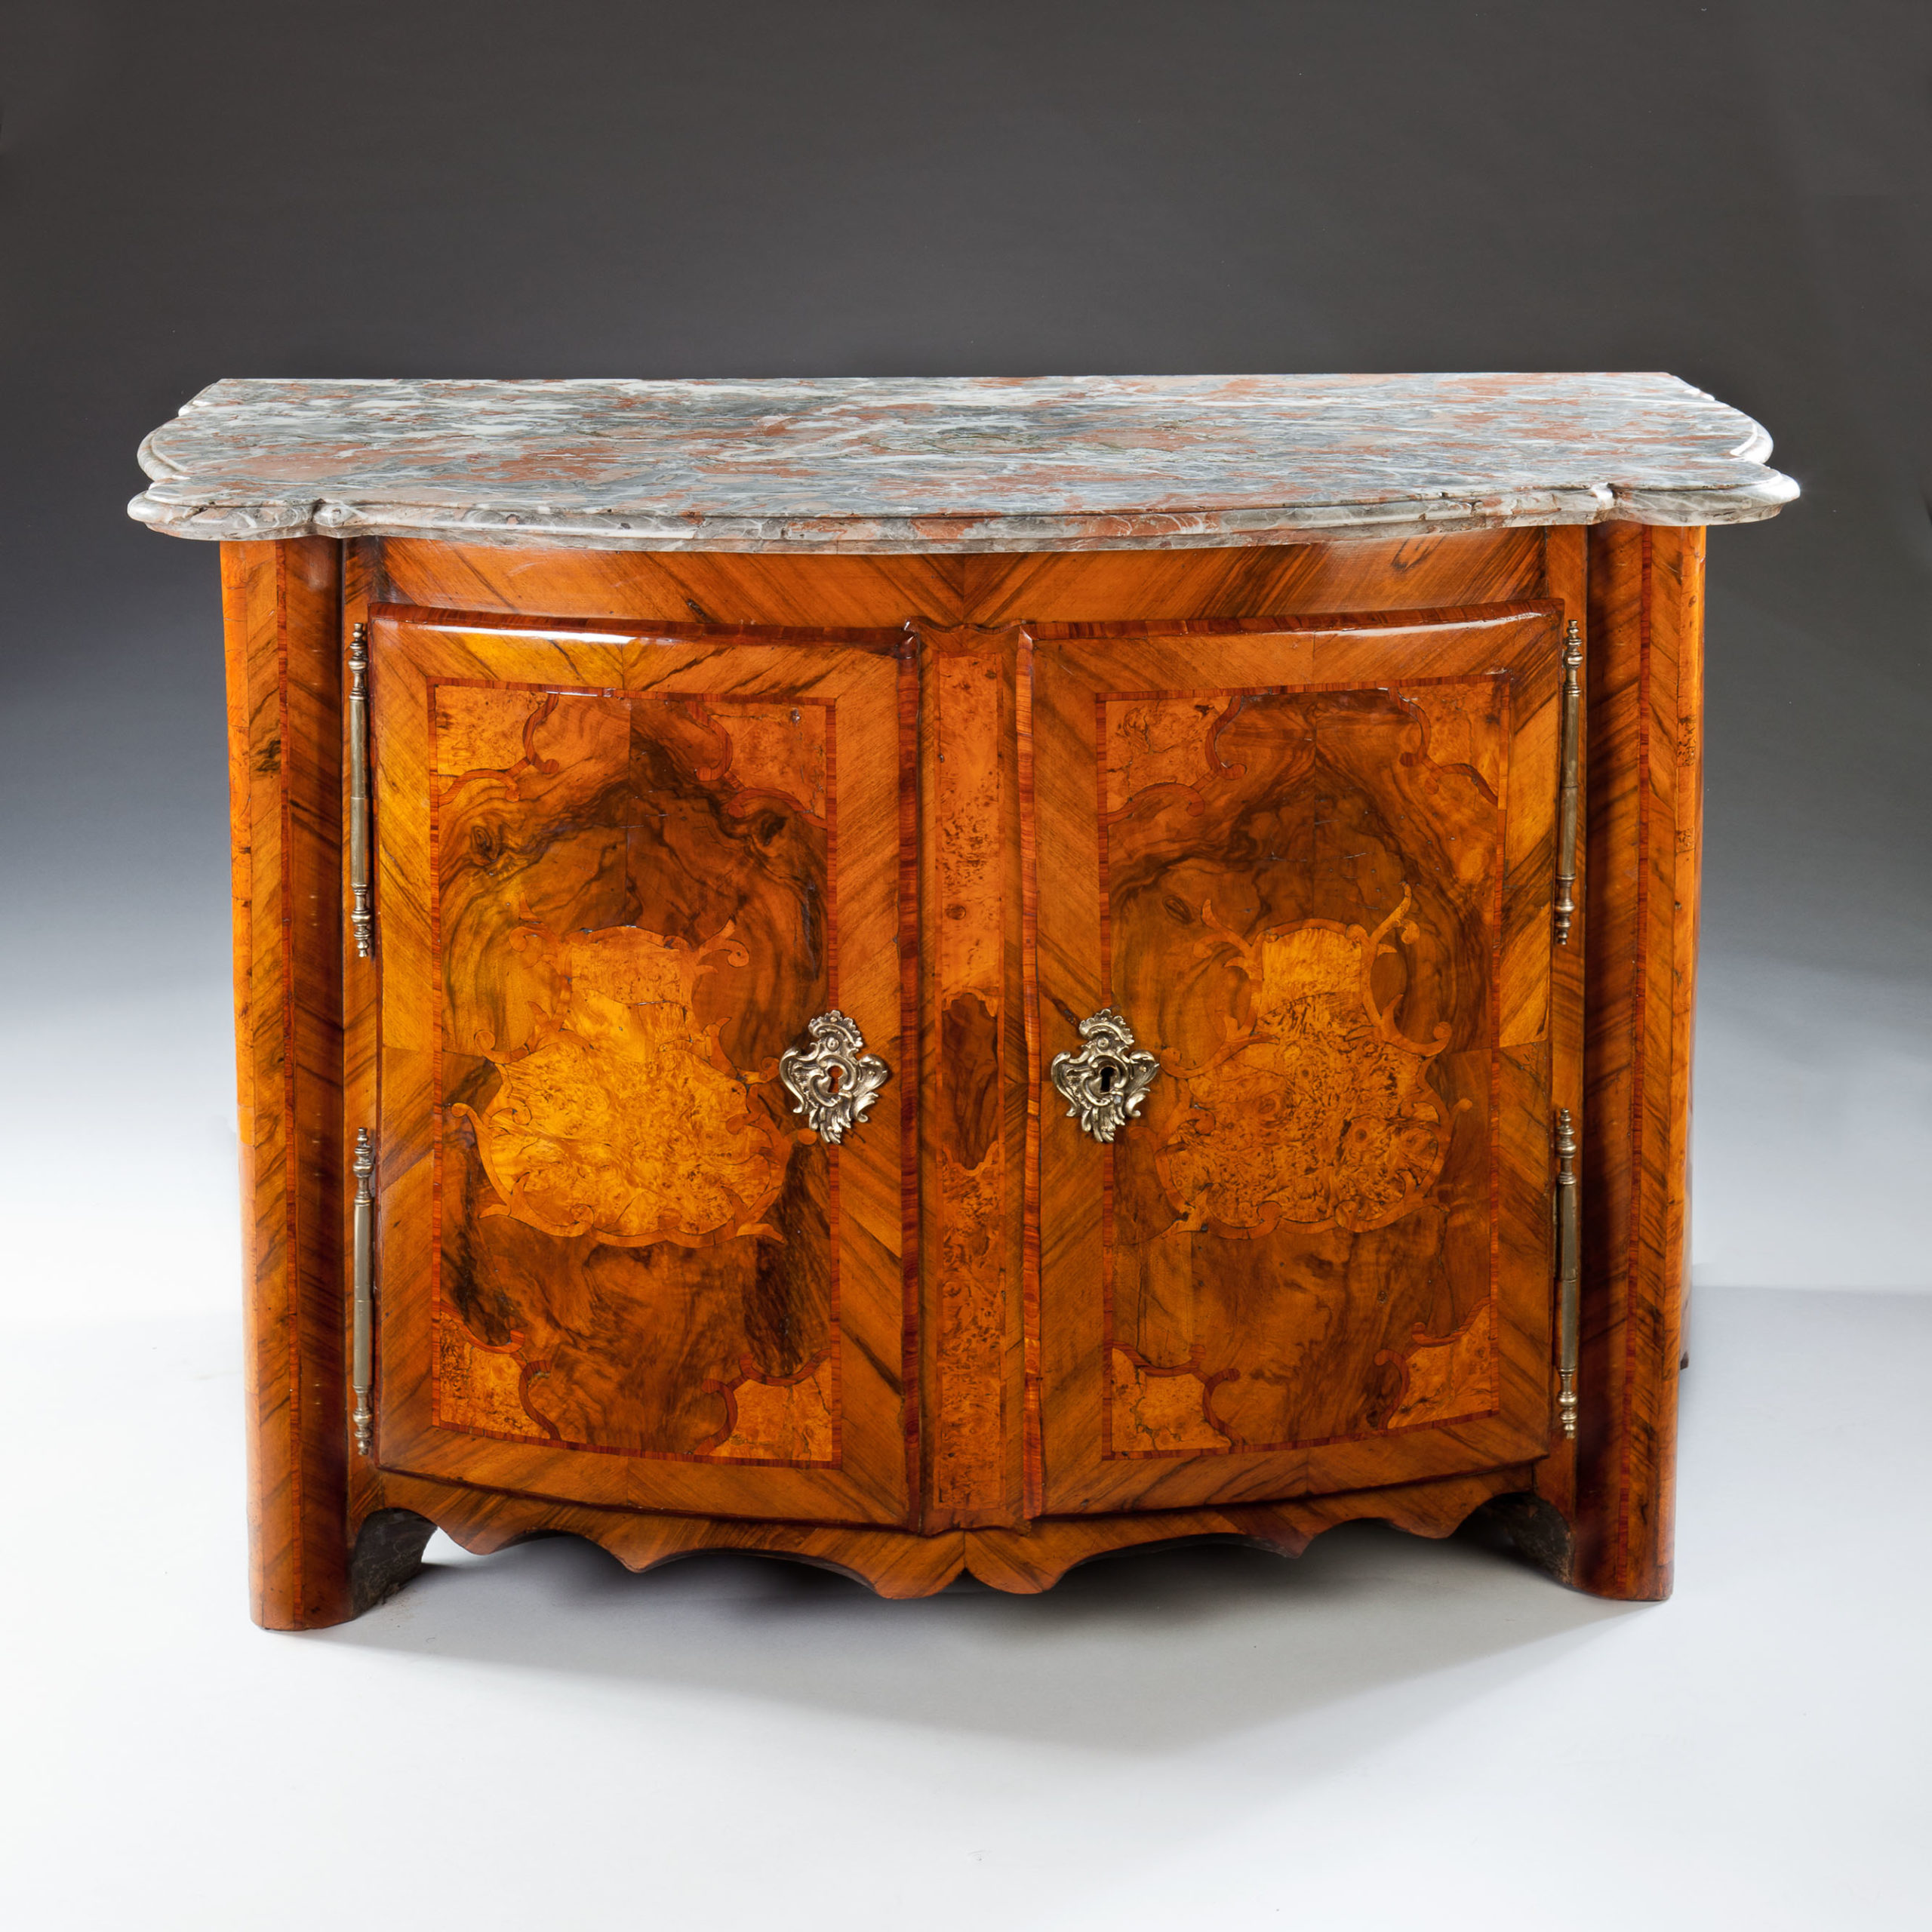 A magnificent and very rare early 18th century two door marquetry cabinet, retaining the original mottled marble top and veneered throughout in fine and highly figured woods of walnut, burr elm and kingwood, the two doors opening to a oak lined interior revealing the oak carcass, the whole raised on bracket feet.